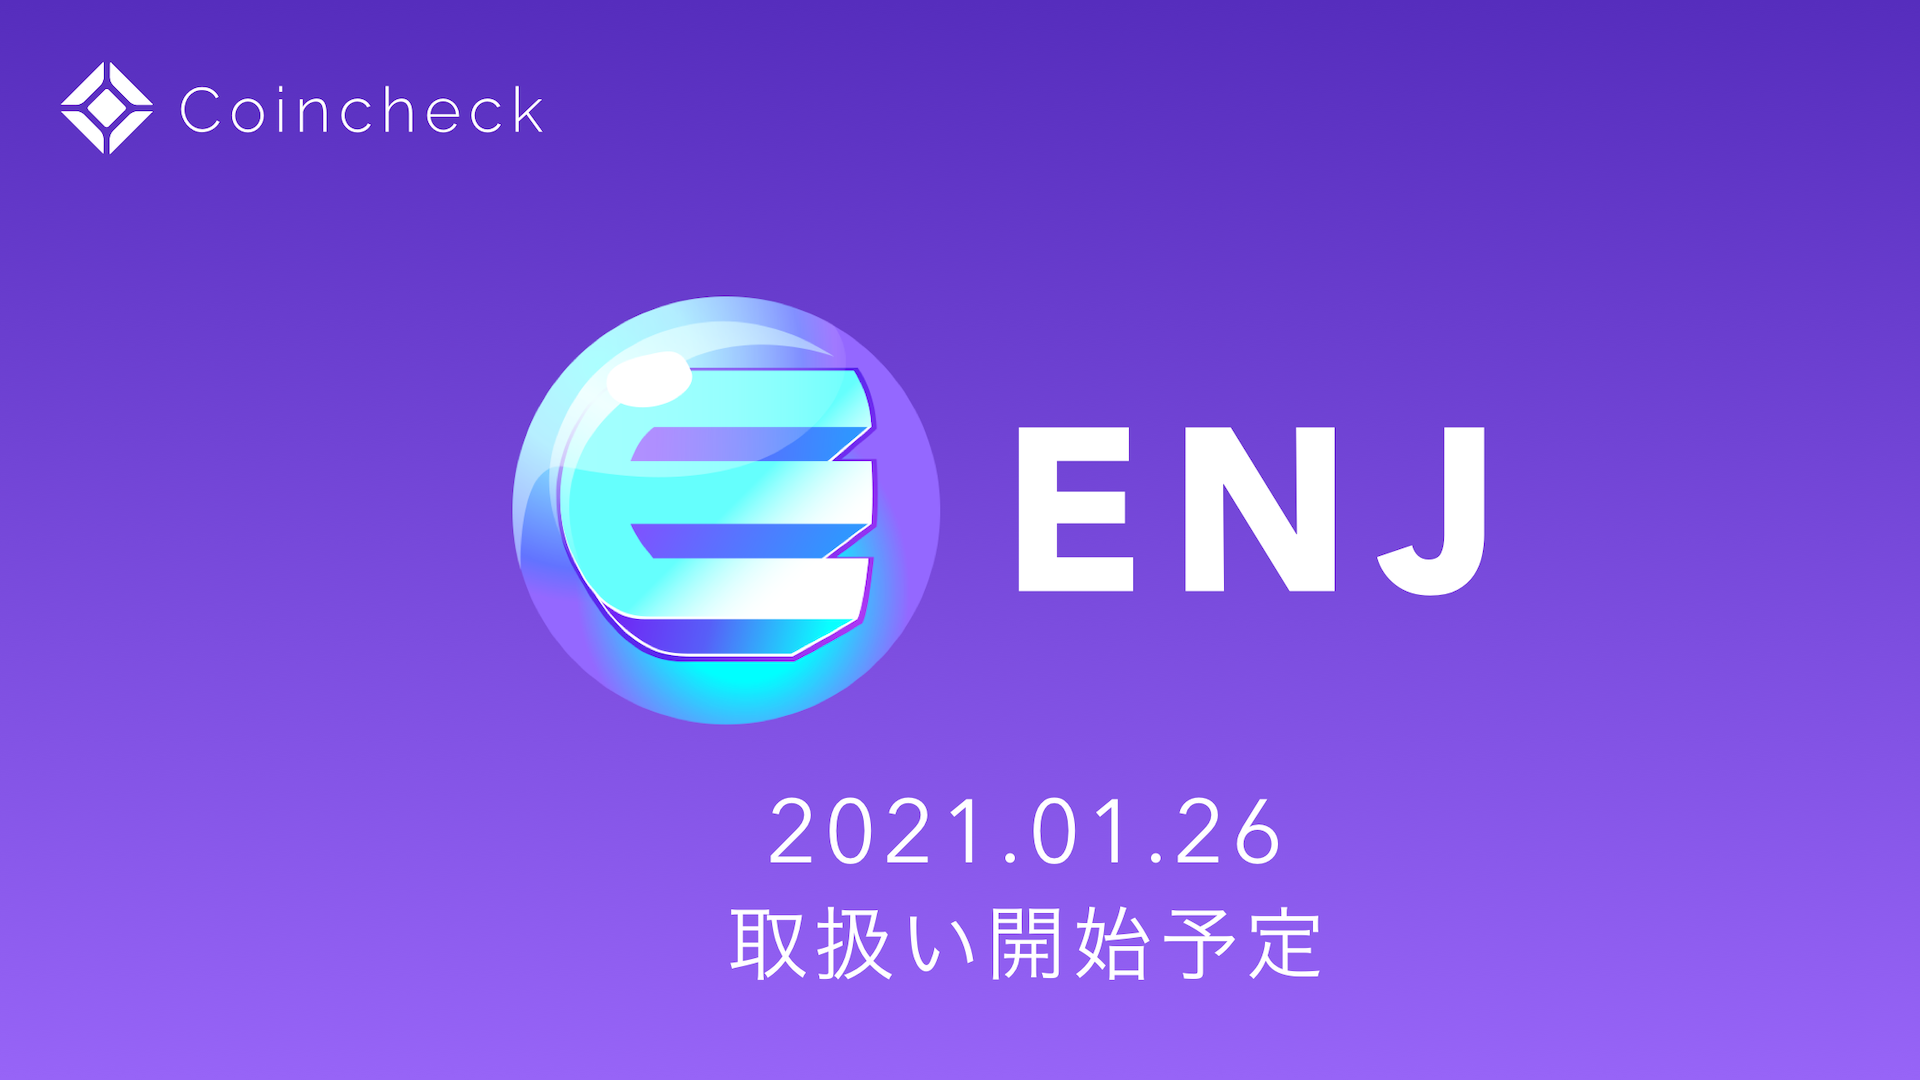 Enjin Coin (ENJ) Approved by Japanese Finance Regulators; Will Be Listed on Coincheck Japan